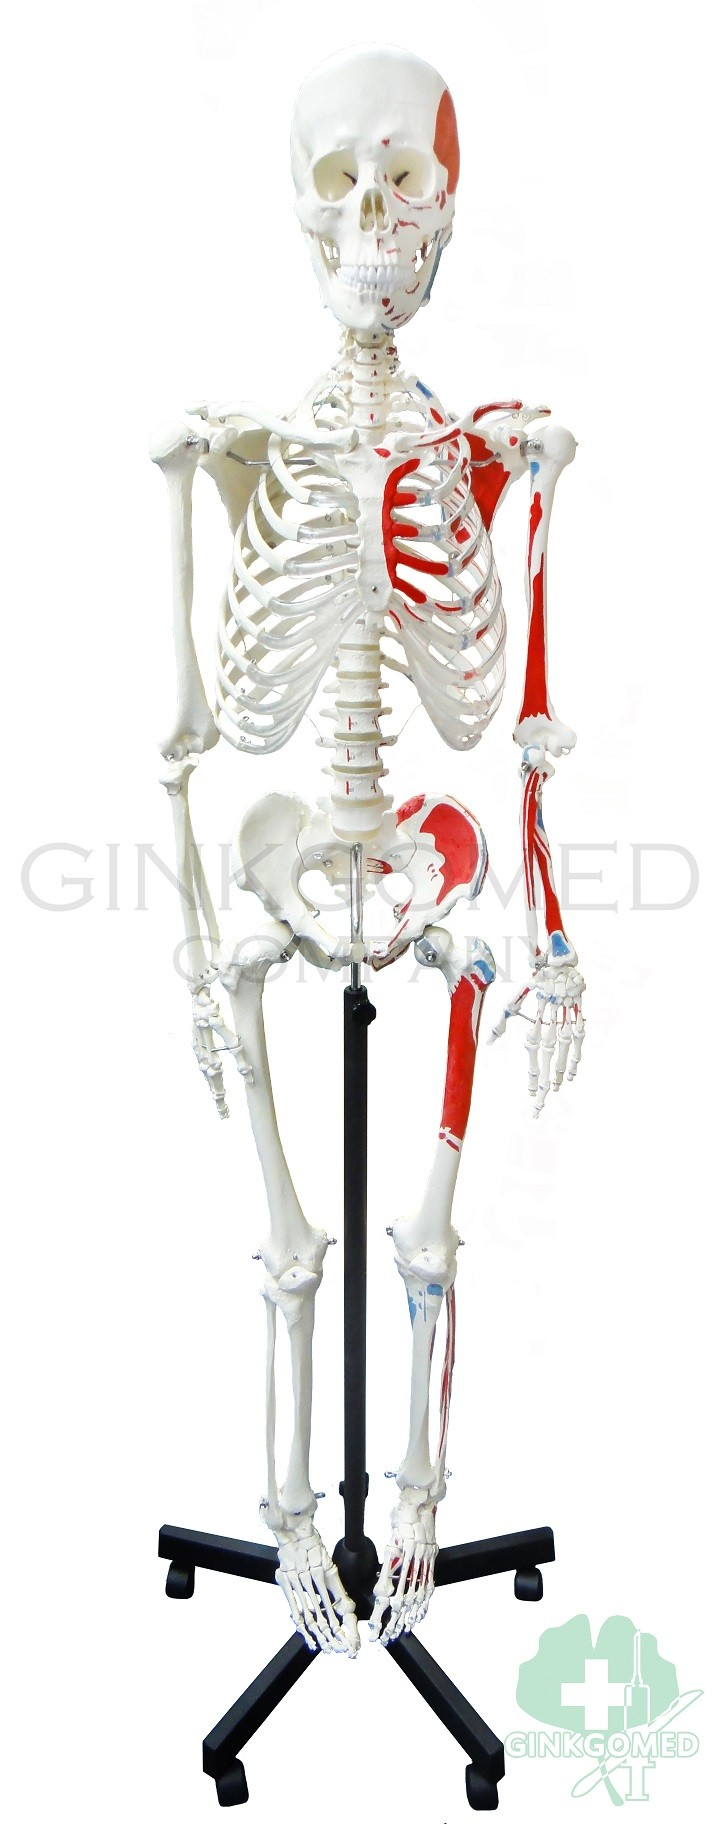 Gm 010030 Articulated Human Skeleton With Muscular Labeling